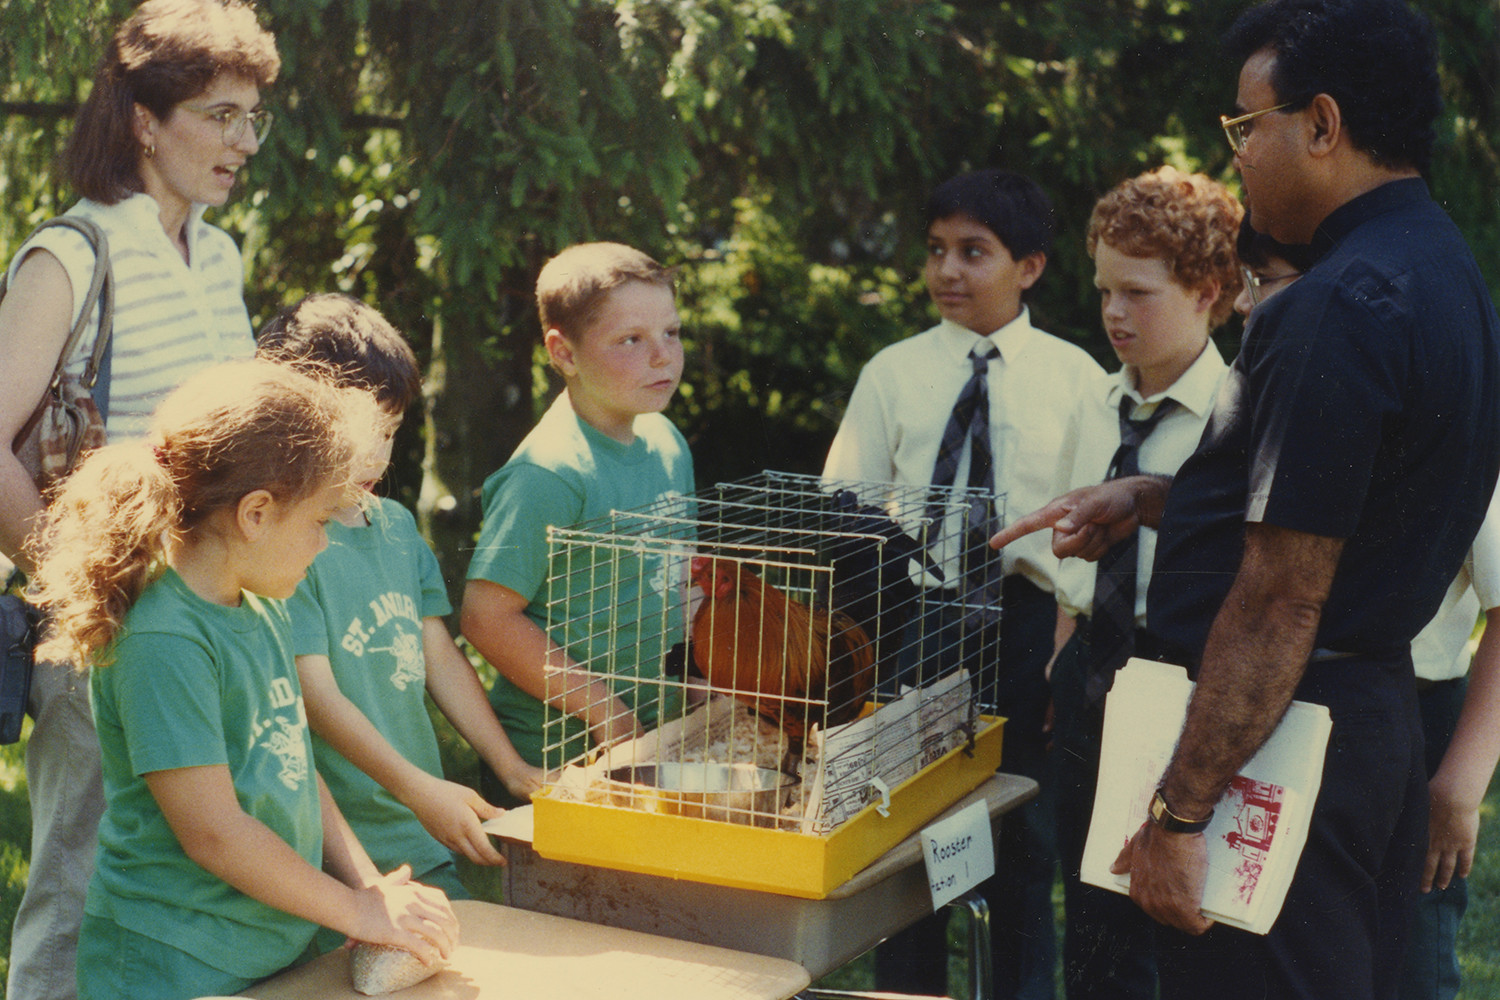 A group of children around a caged chicken.